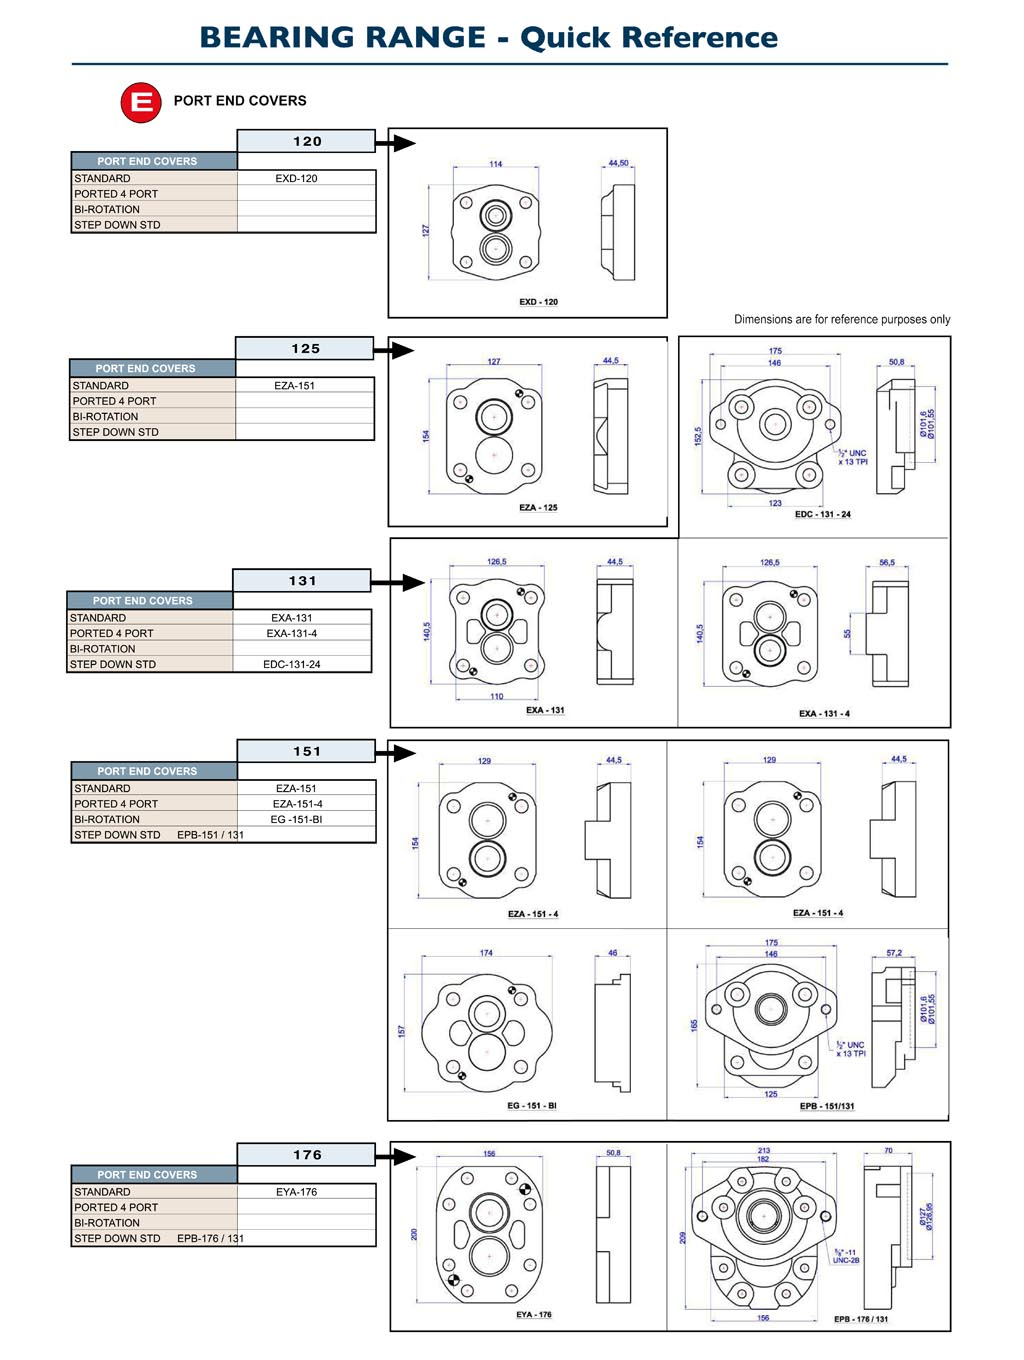 GPM Bearing Pumps Quick Reference E